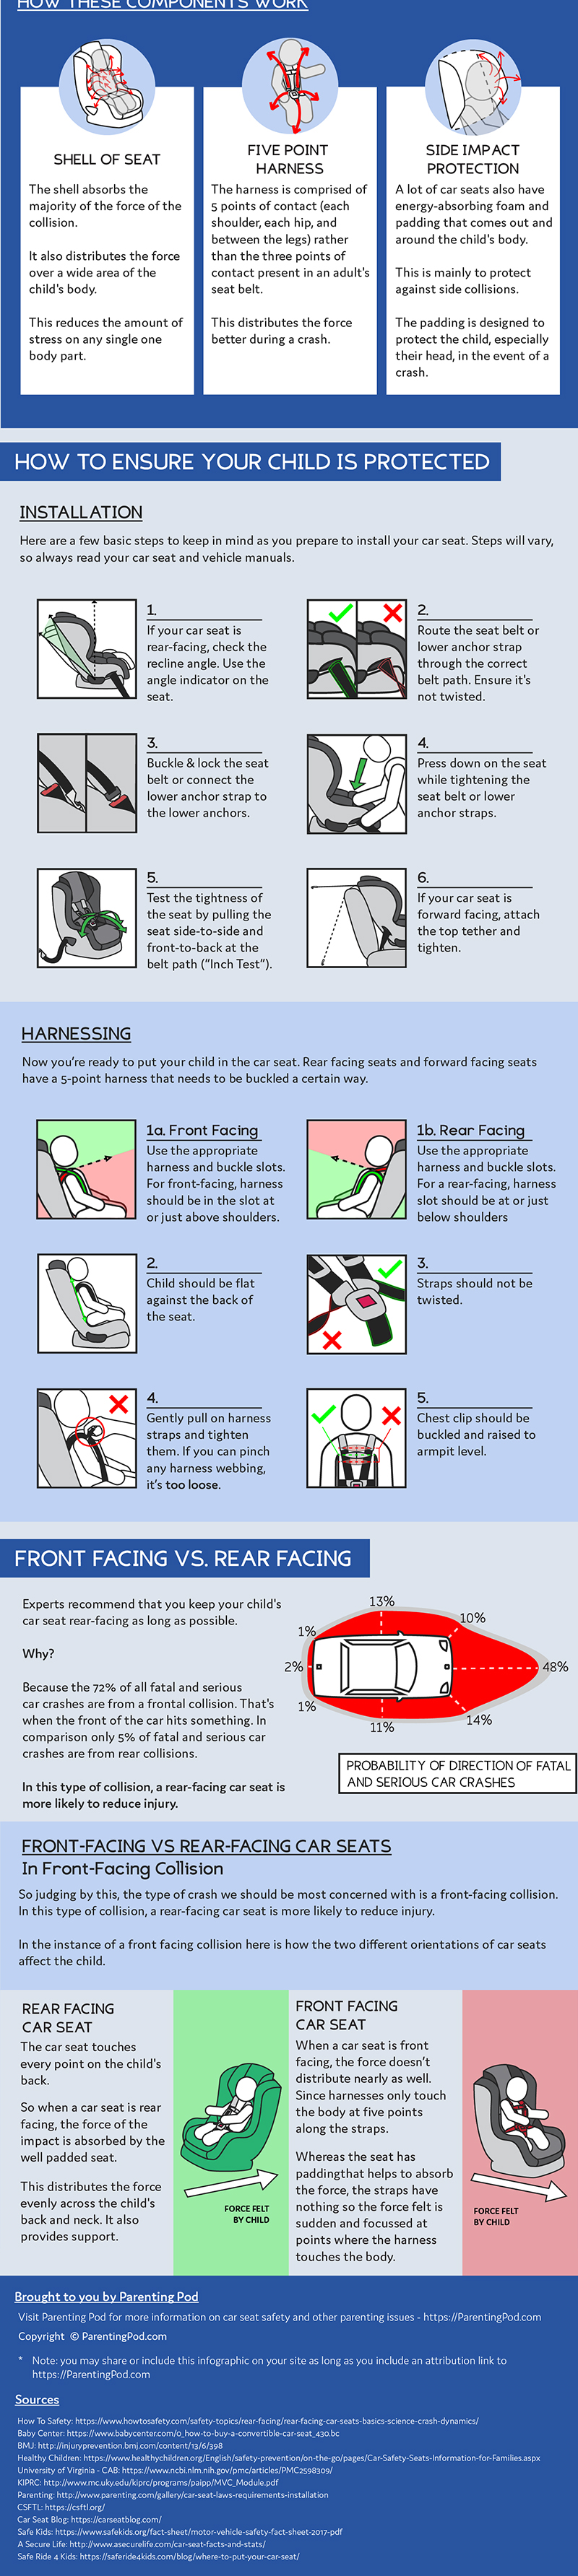 How car seats work infographic - Cleverlychanging